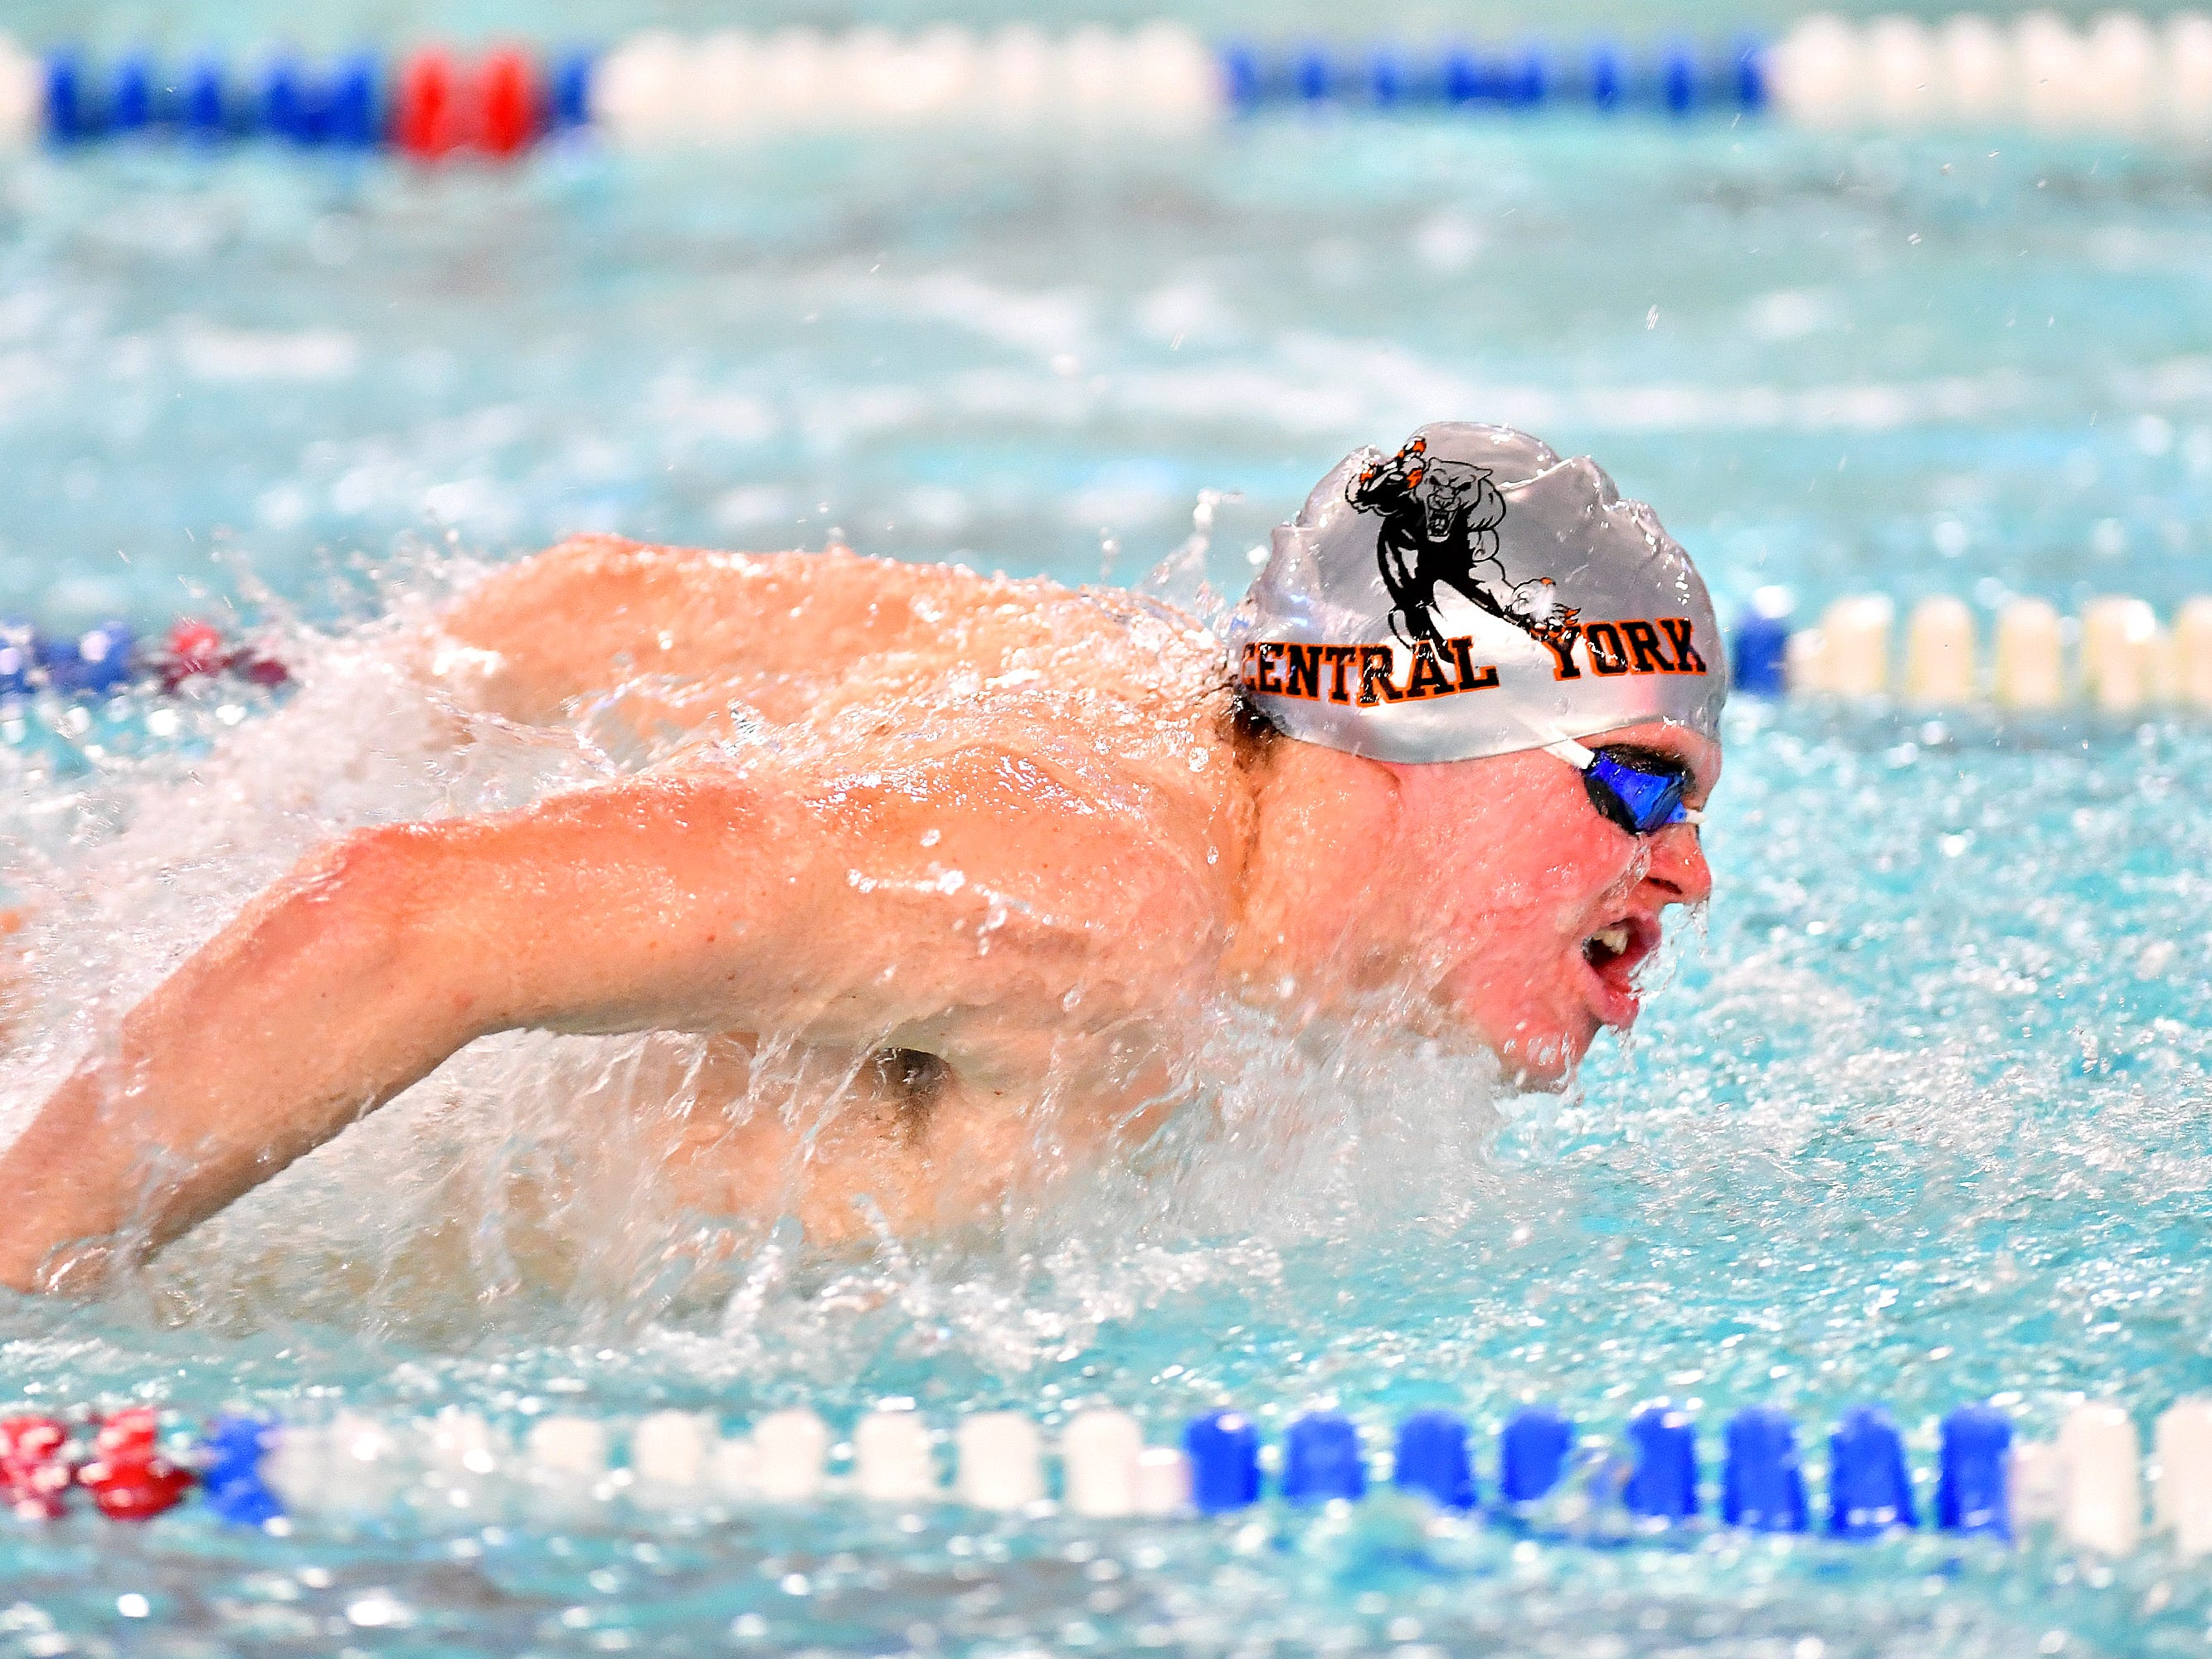 Central York vs Dallastown during the Boys 200 Yard Medley Relay event at Dallastown Area High School in York Township, Thursday, Jan. 10, 2019. Dawn J. Sagert photo